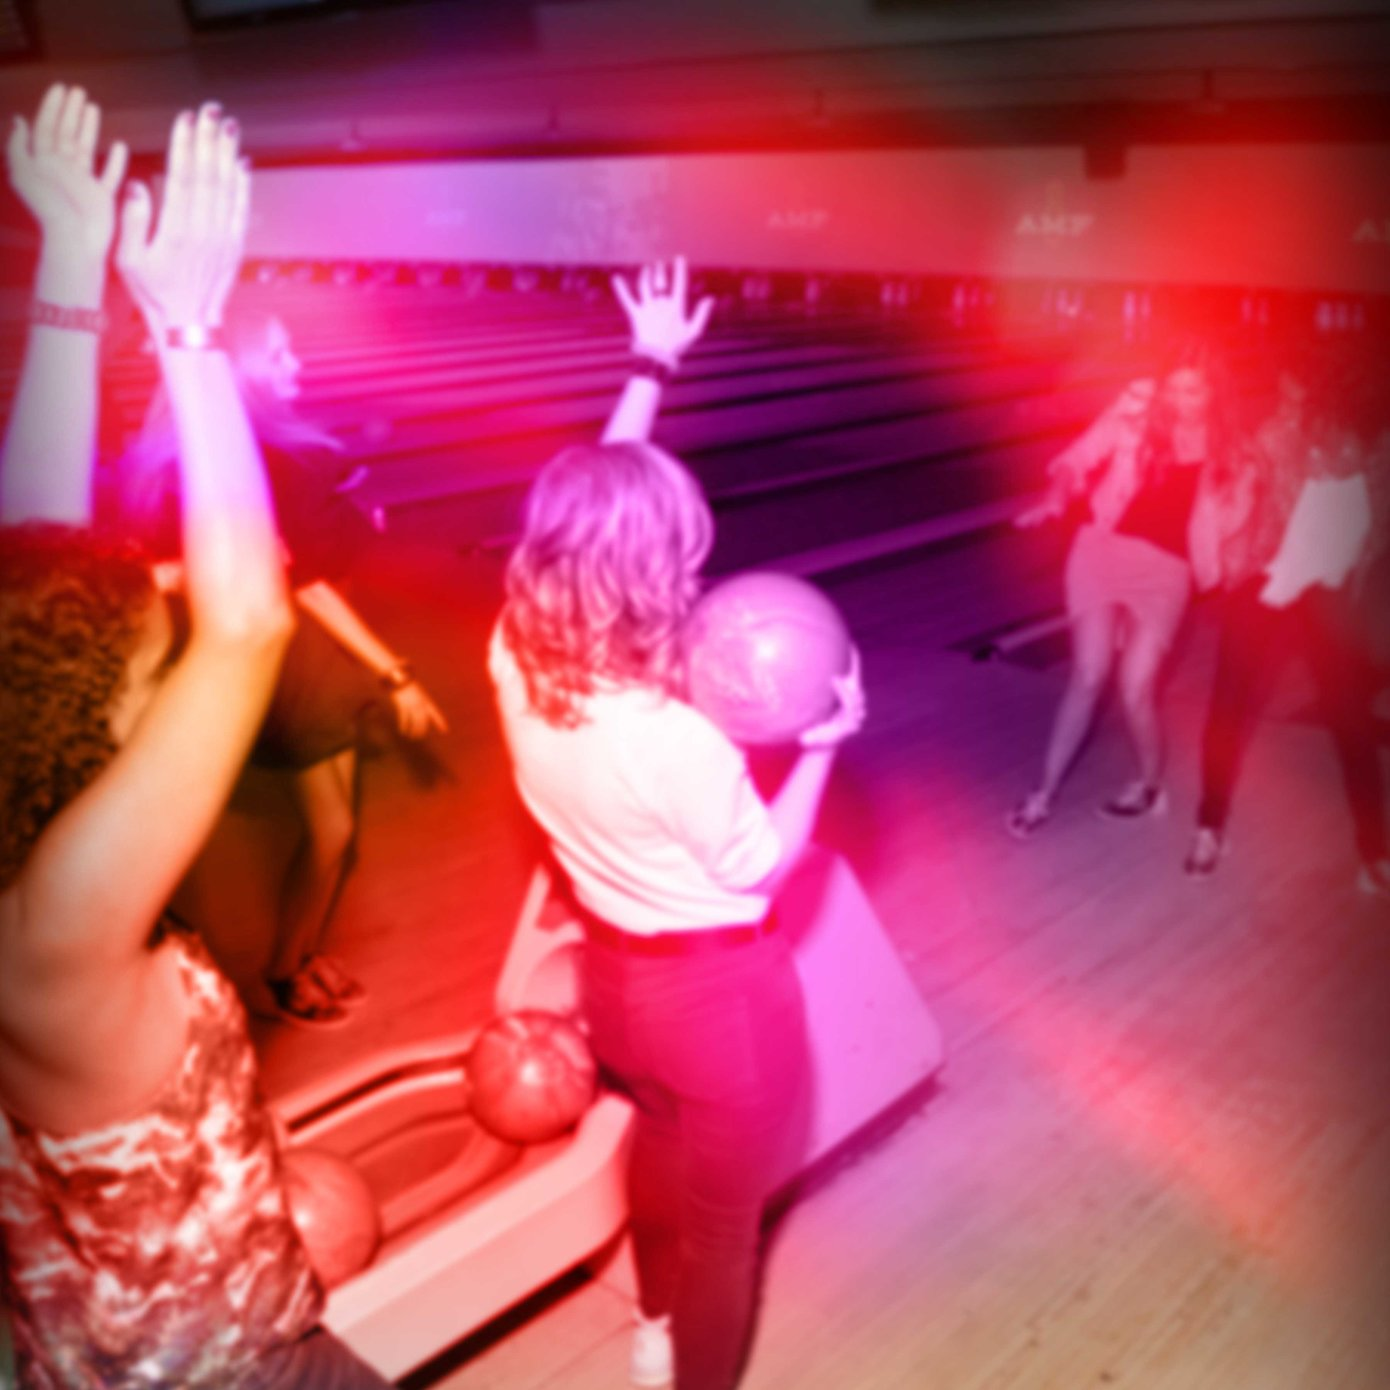 Girls cheering and dancing on lanes